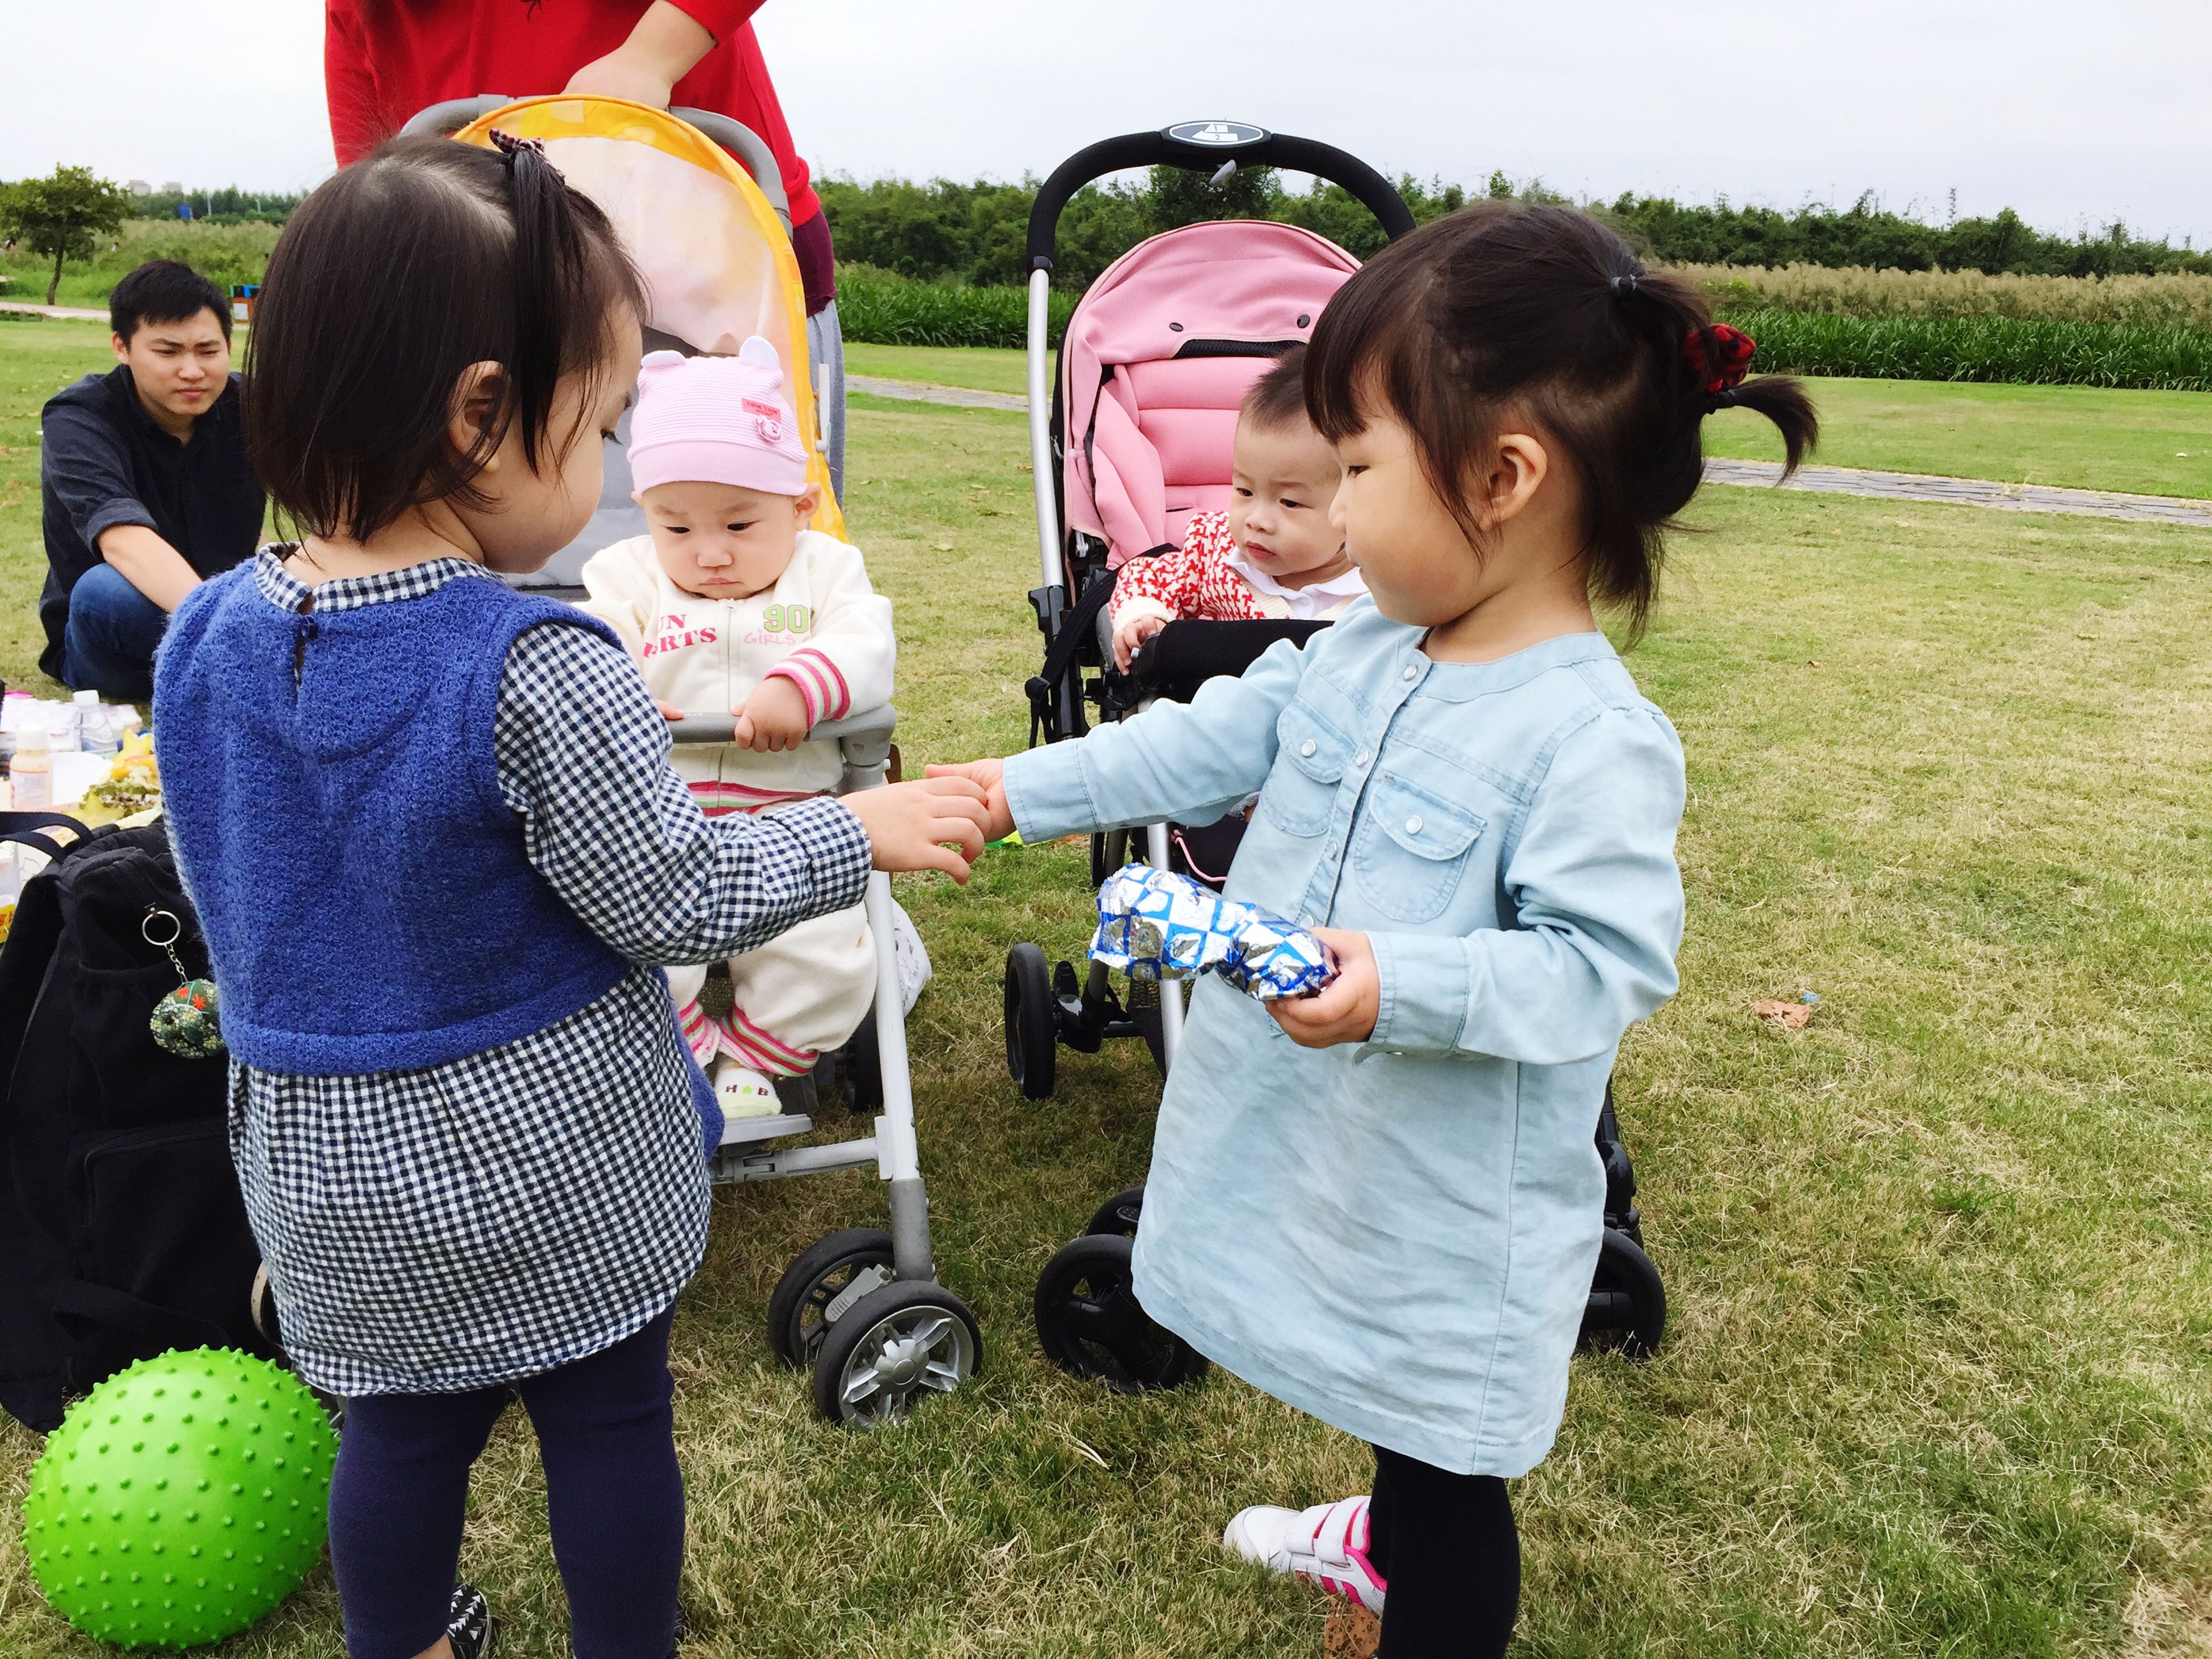 childhood, casual clothing, elementary age, boys, person, lifestyles, togetherness, bonding, grass, leisure activity, girls, cute, love, innocence, full length, three quarter length, happiness